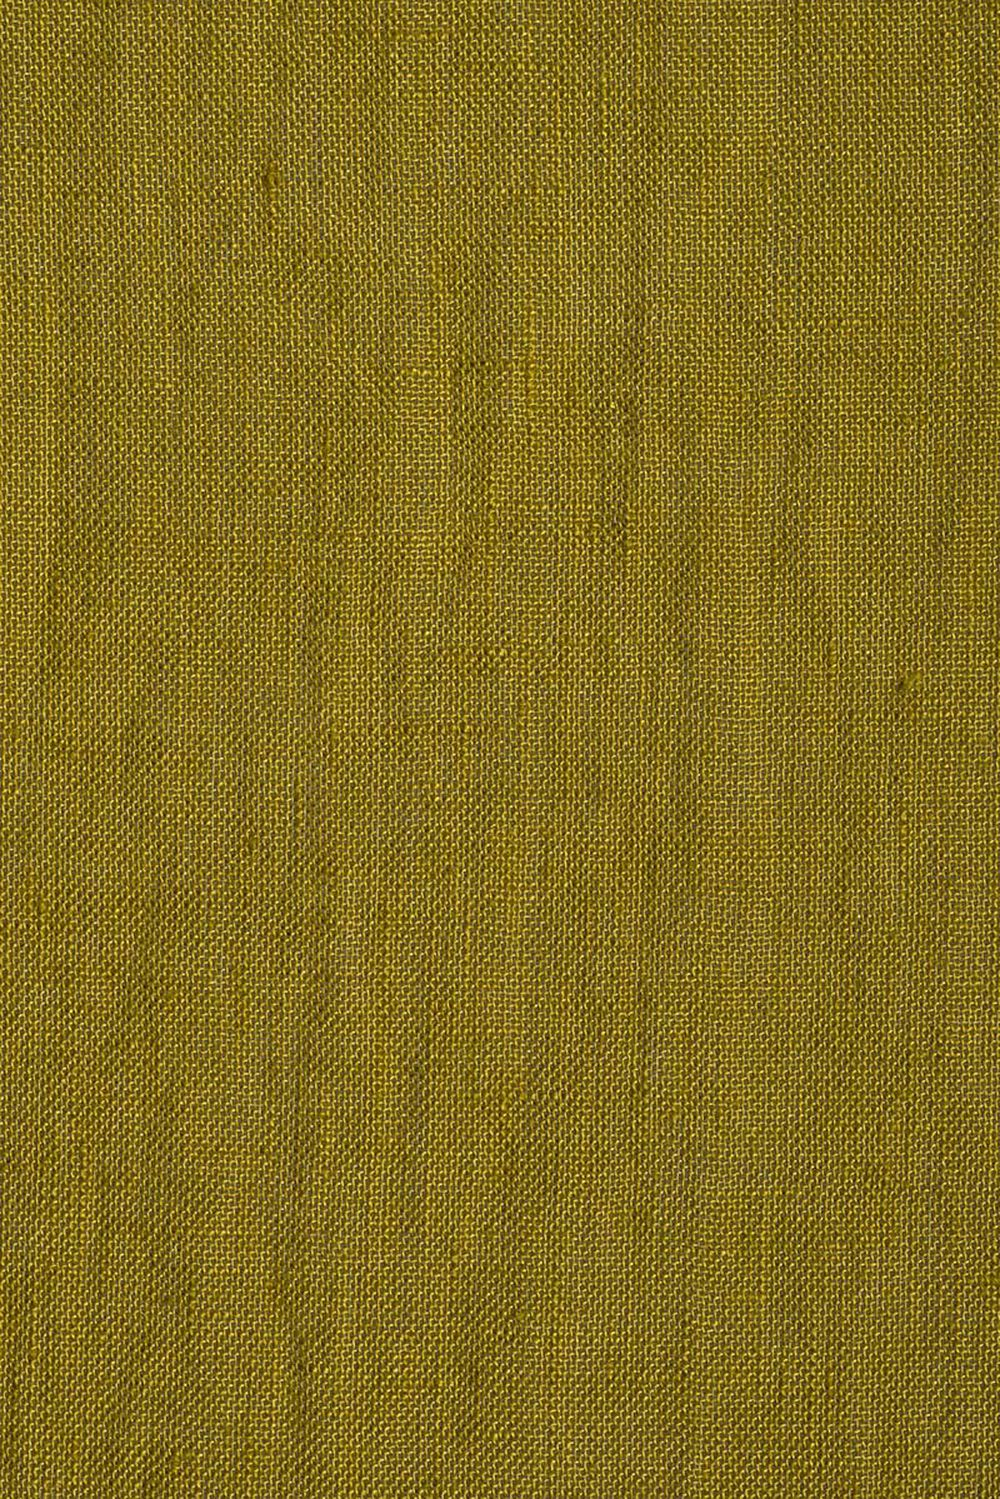 Photo of the fabric Kanso Stonewash Chartreuse swatch by Mokum. Use for Curtains. Style of Plain